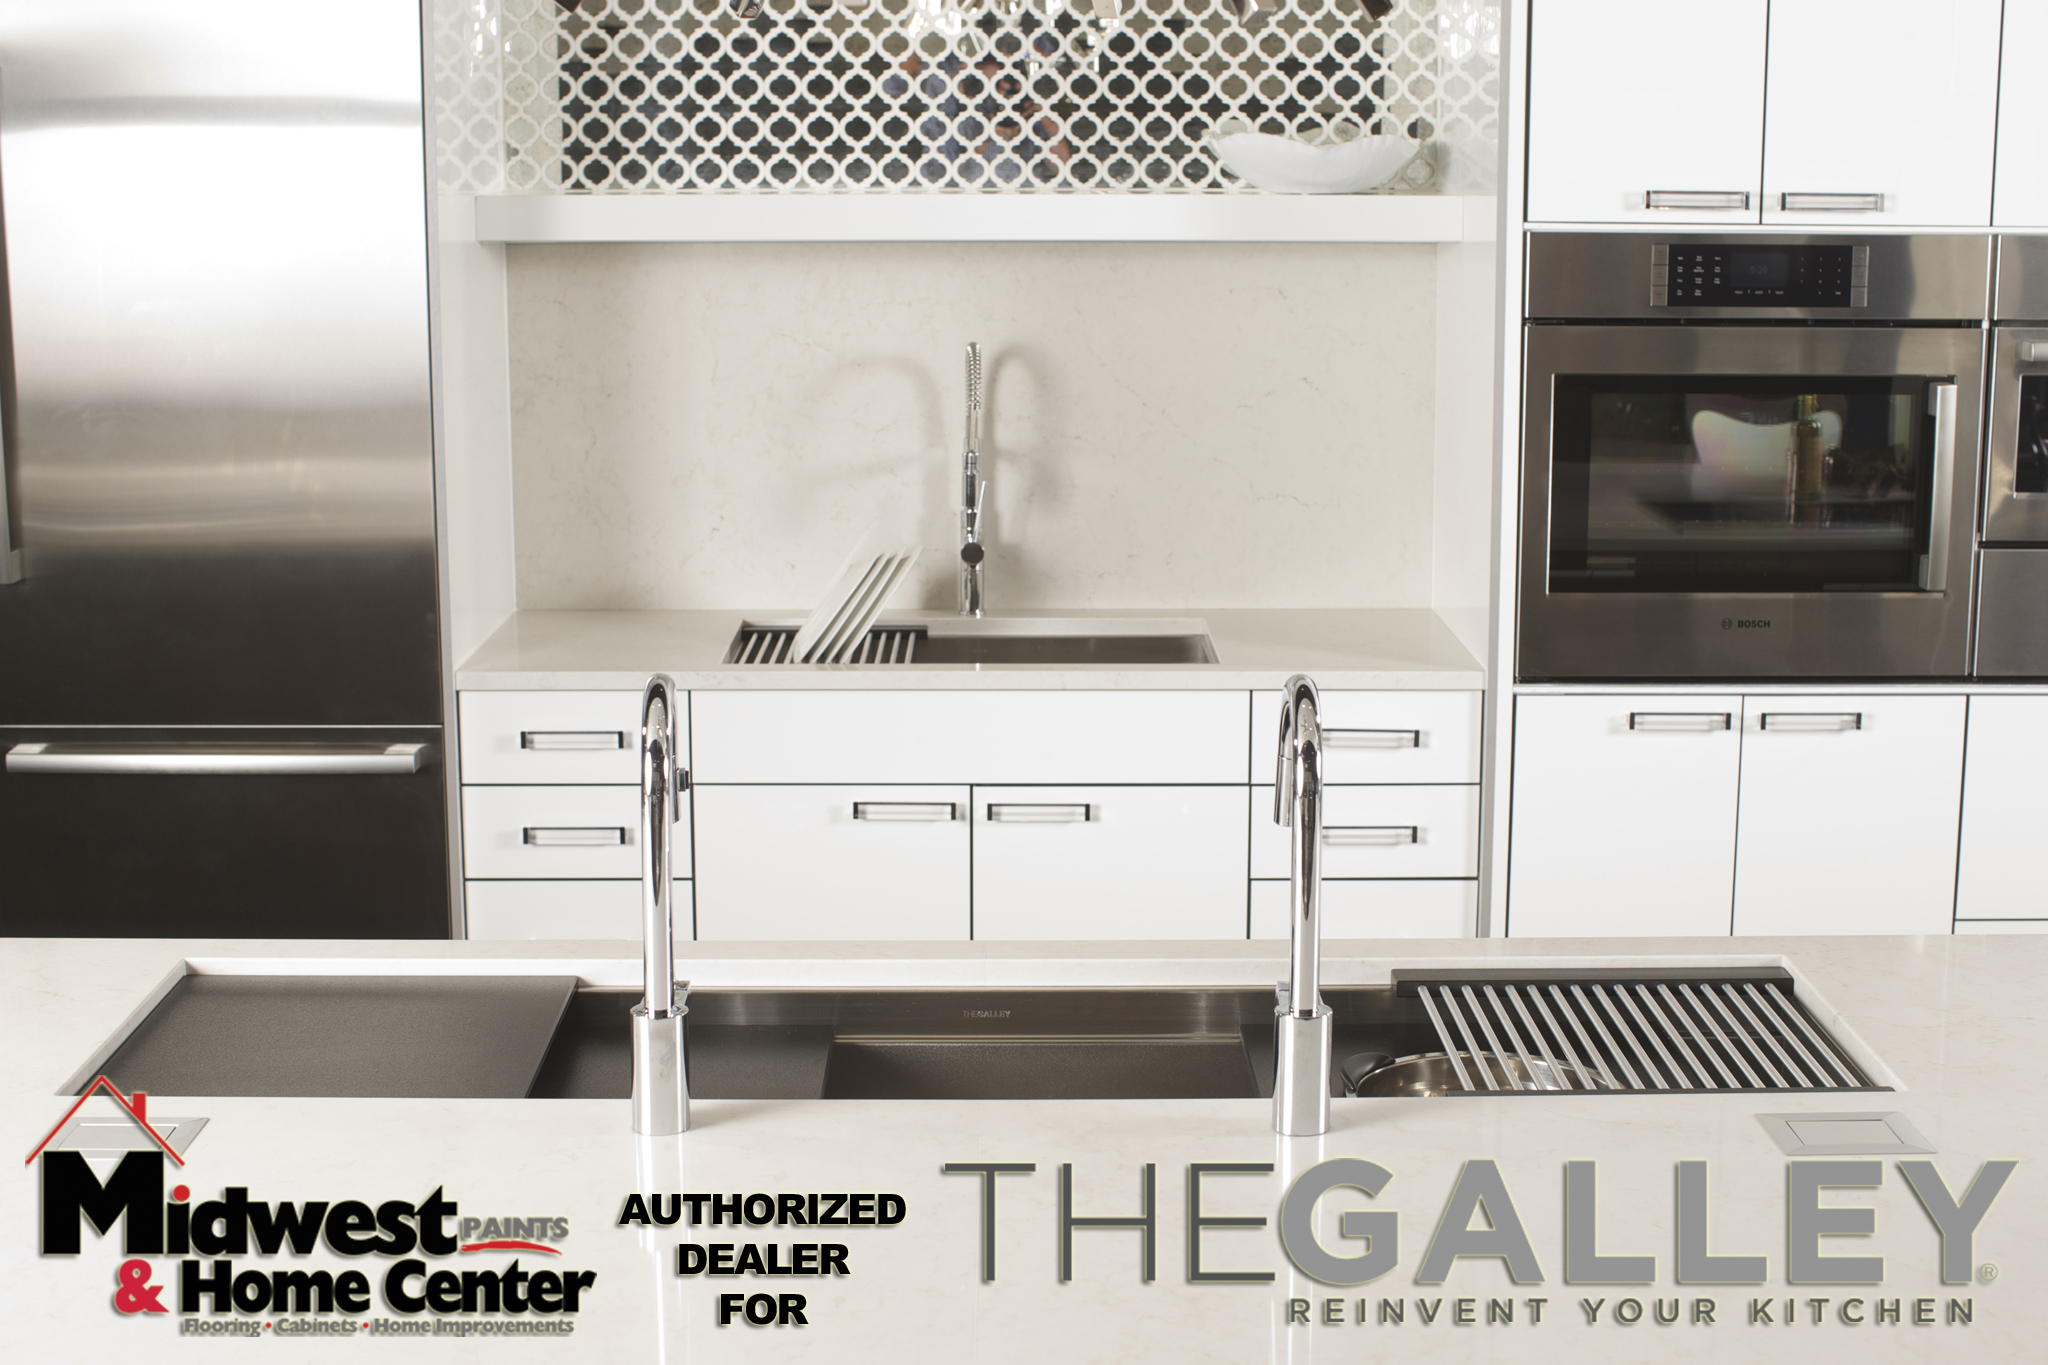 9/25/14 5:20:12 PM -- Kitchen interiors of The Galley sink at Metro Appliance for Kitchen Ideas/The Galley  Photo by Shane Bevel